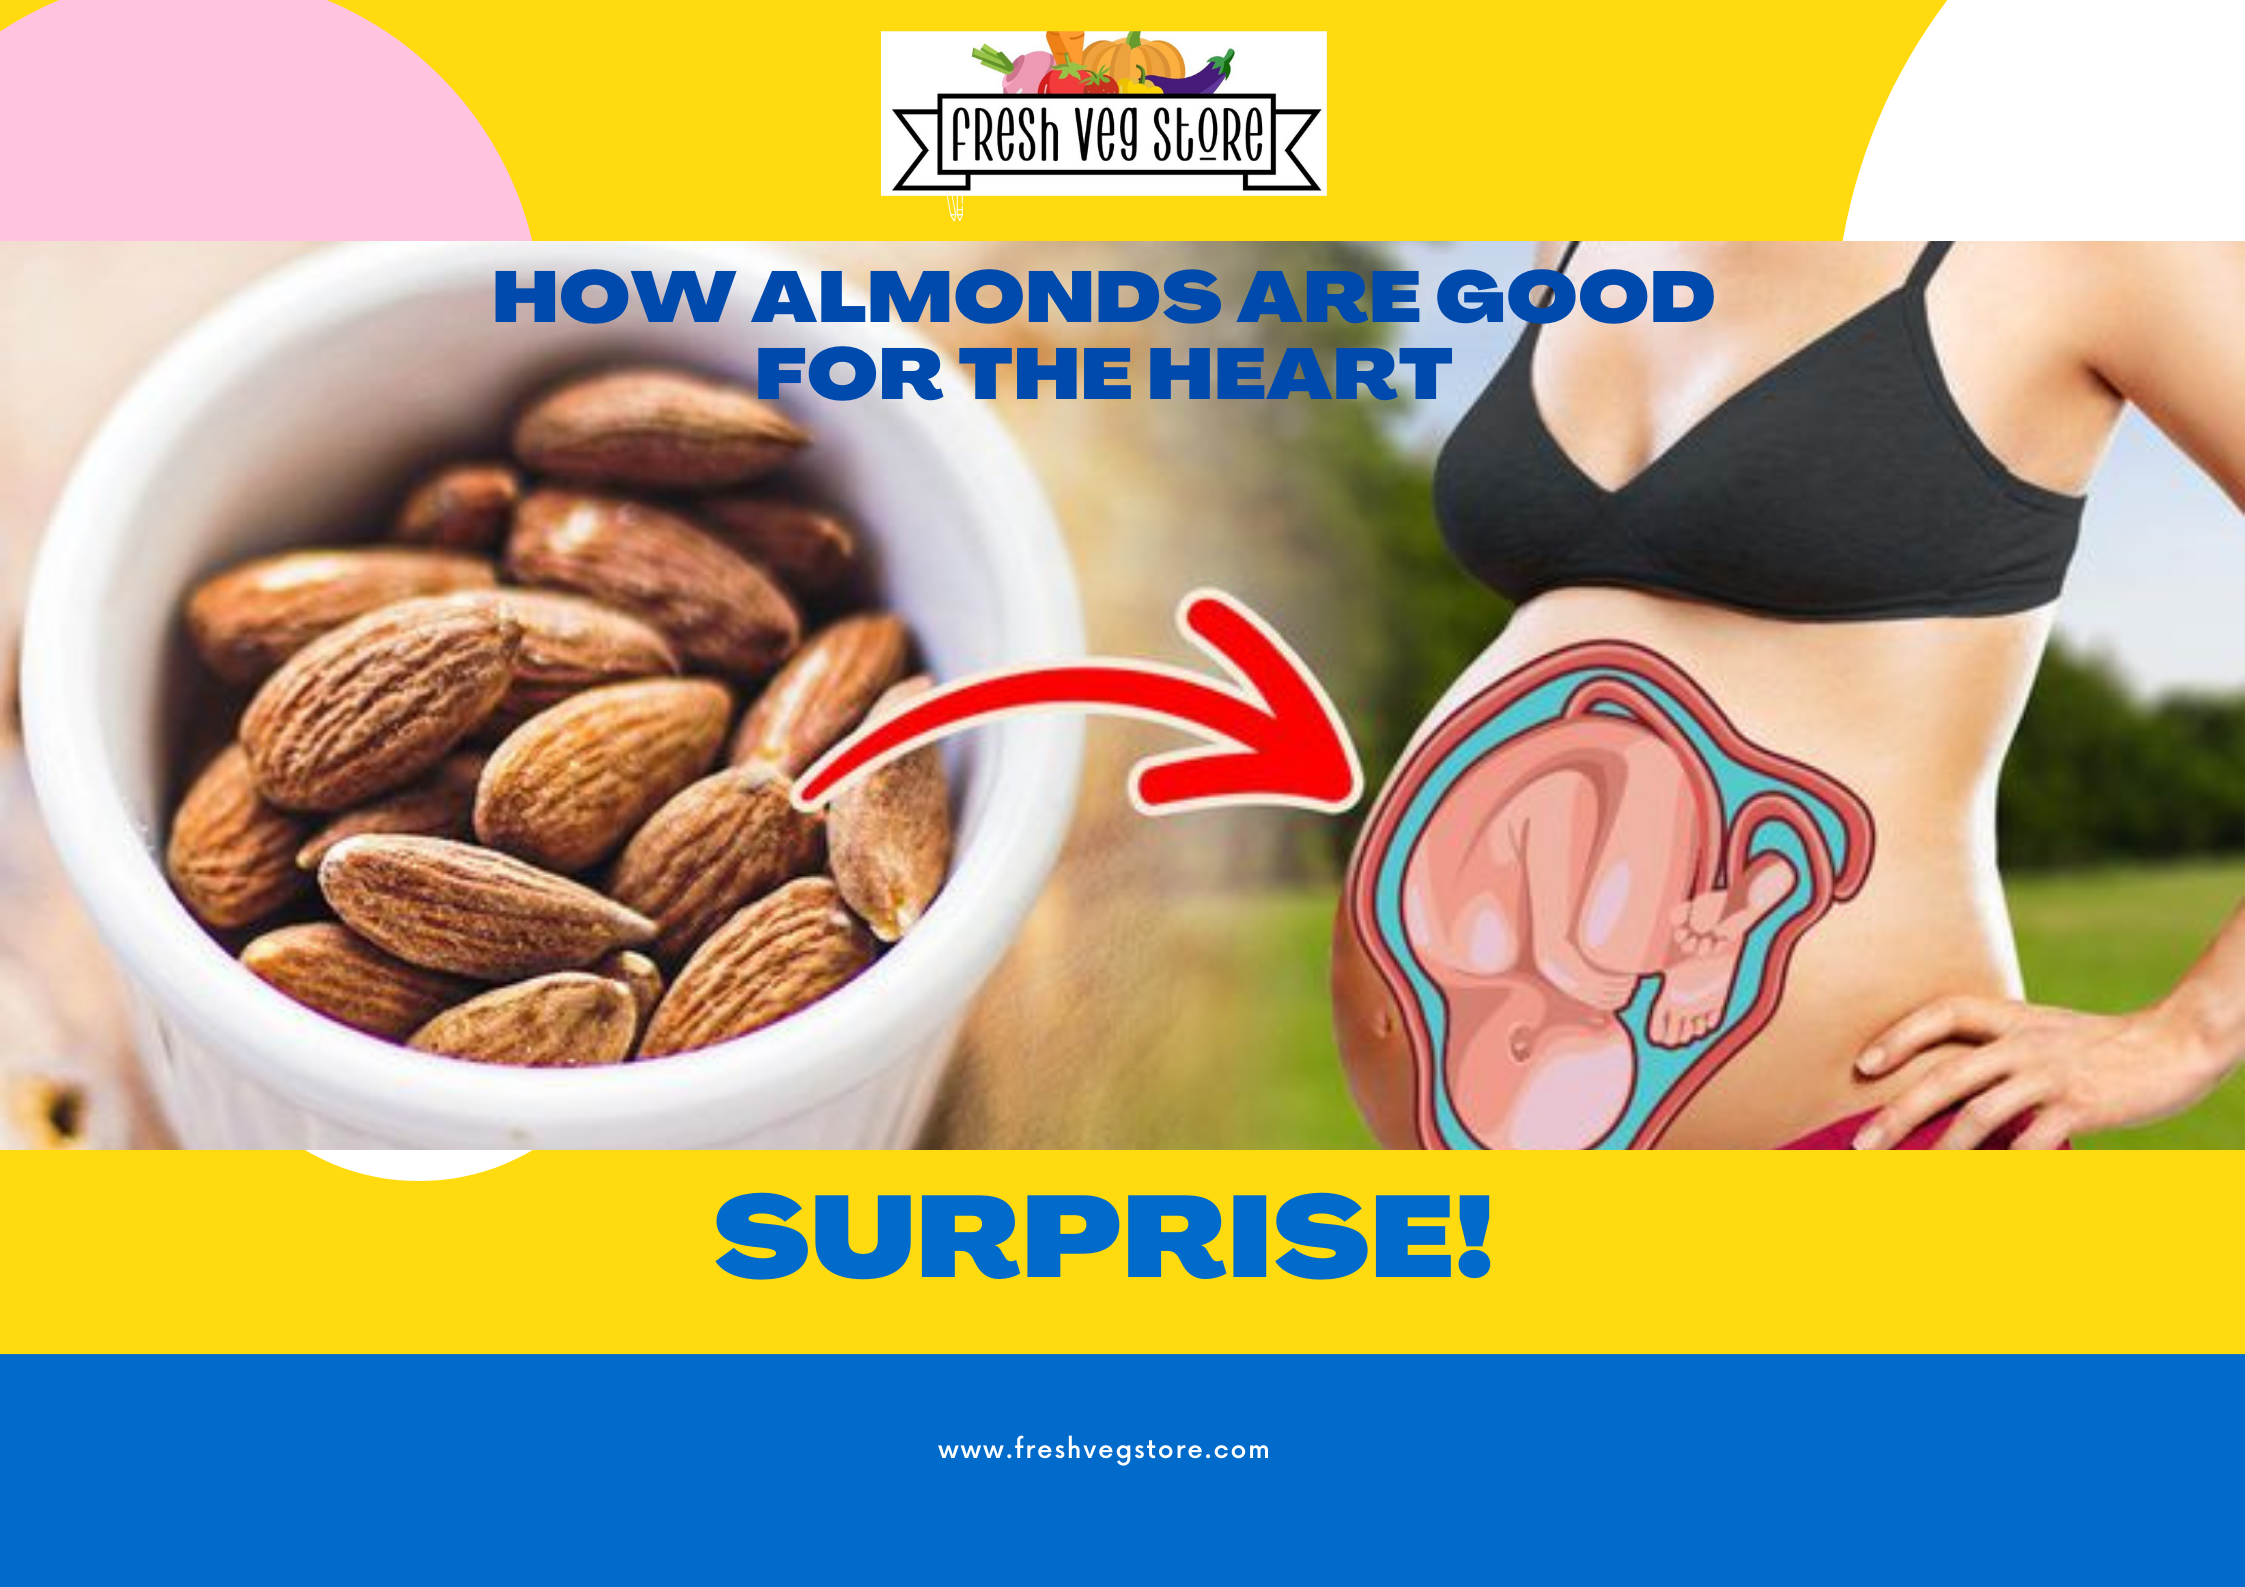 HOW ALMONDS ARE GOOD FOR THE HEART?